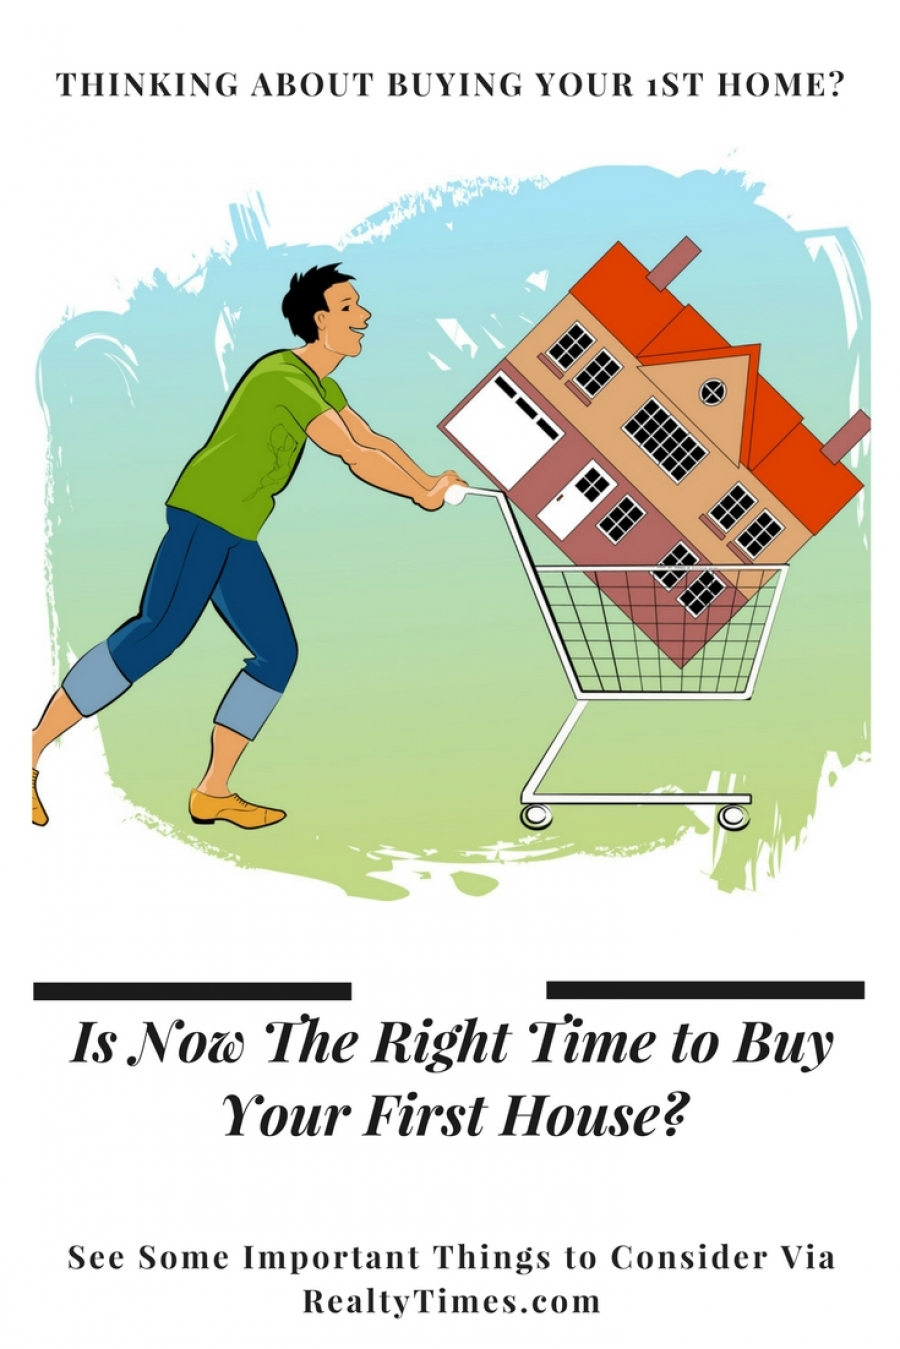 Is Now The Right Time to Buy Your First House